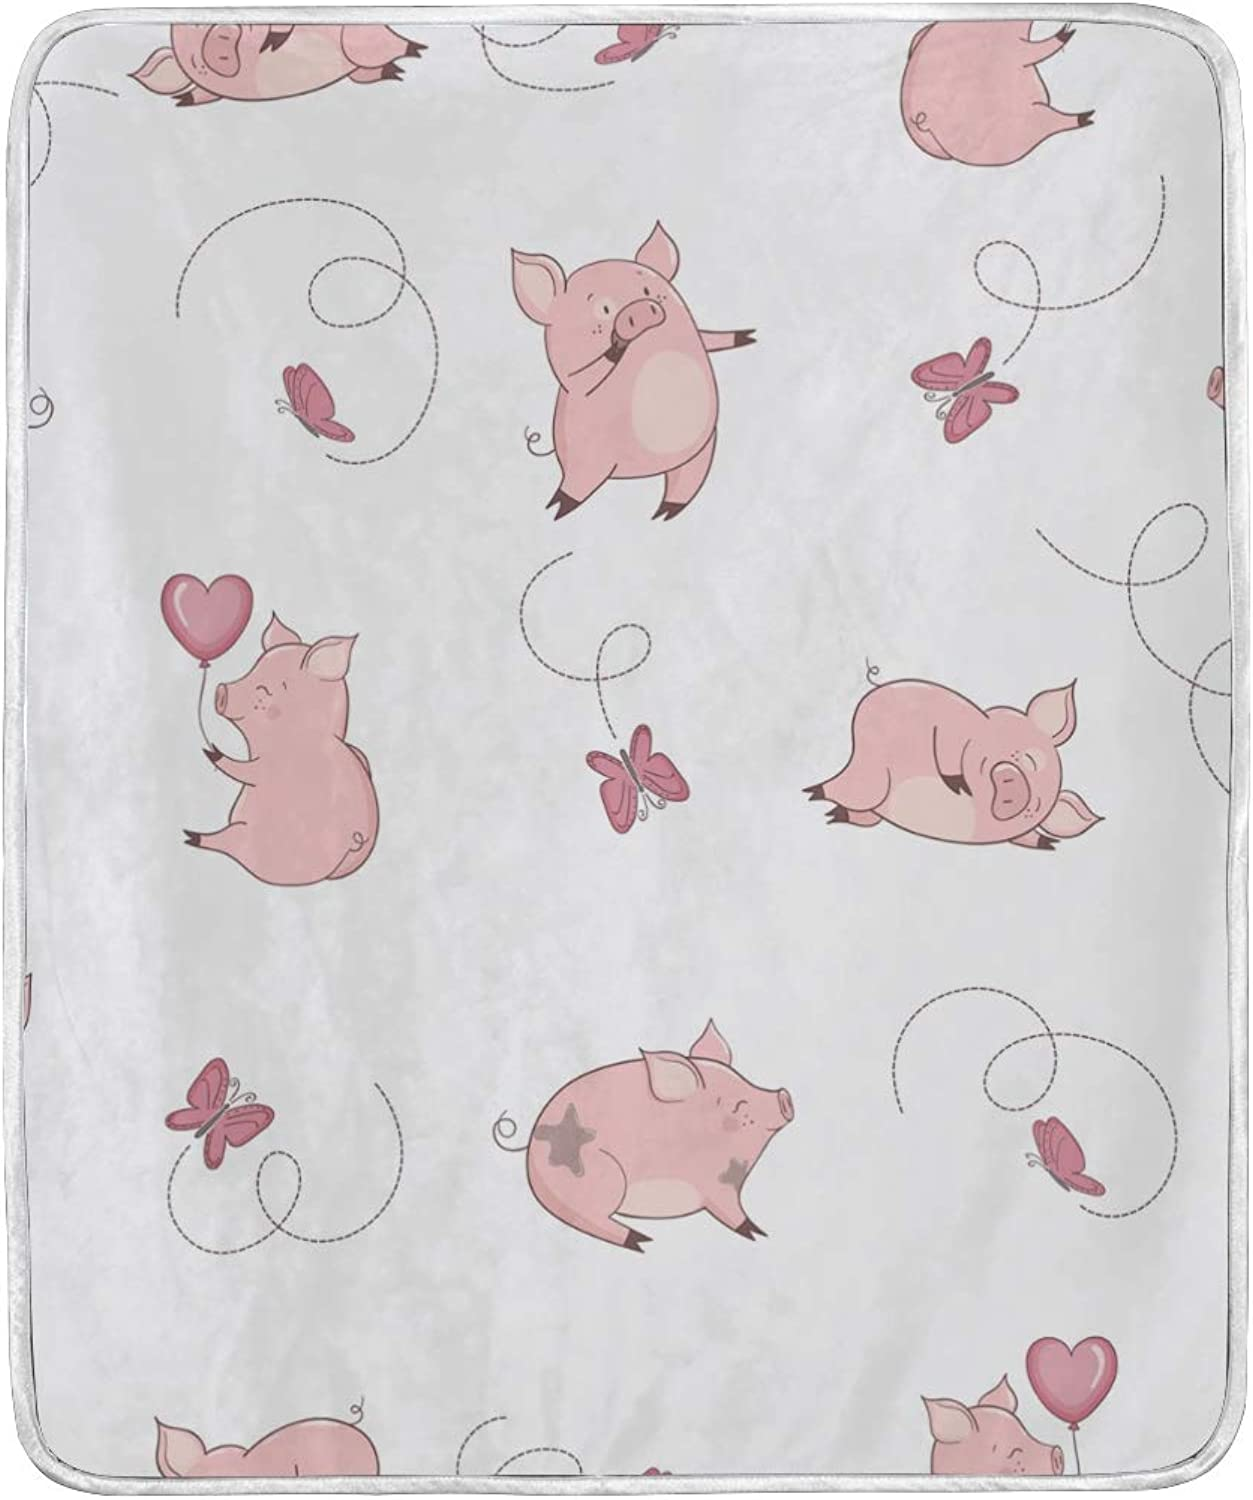 Vantaso Blankets Cute Pig Funny Butterflies Throws Soft Kids Girls Boys 50x60 inch